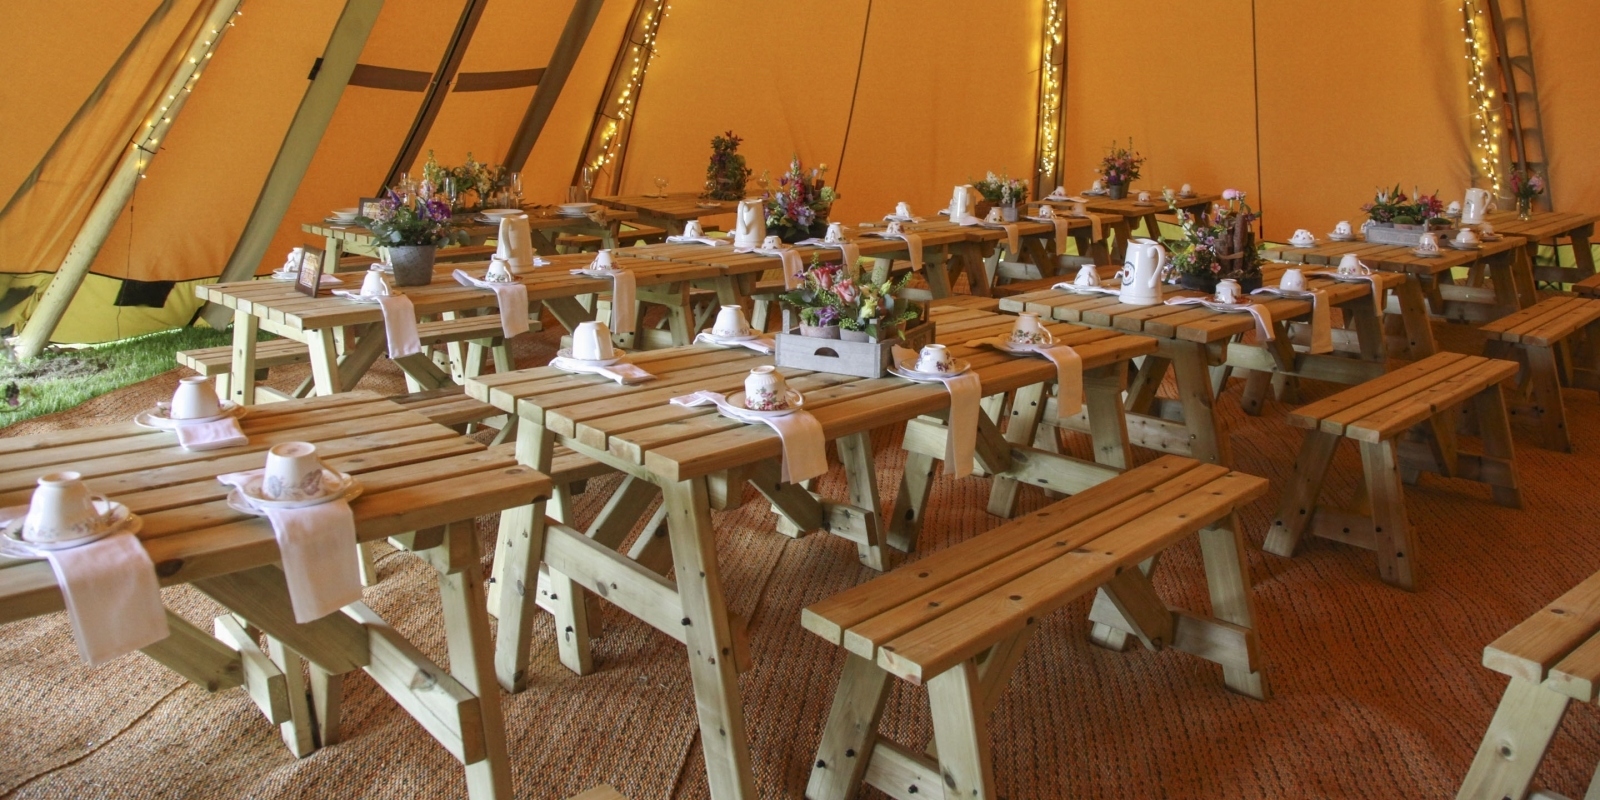 Our Tipis are perfect for holding parties and events